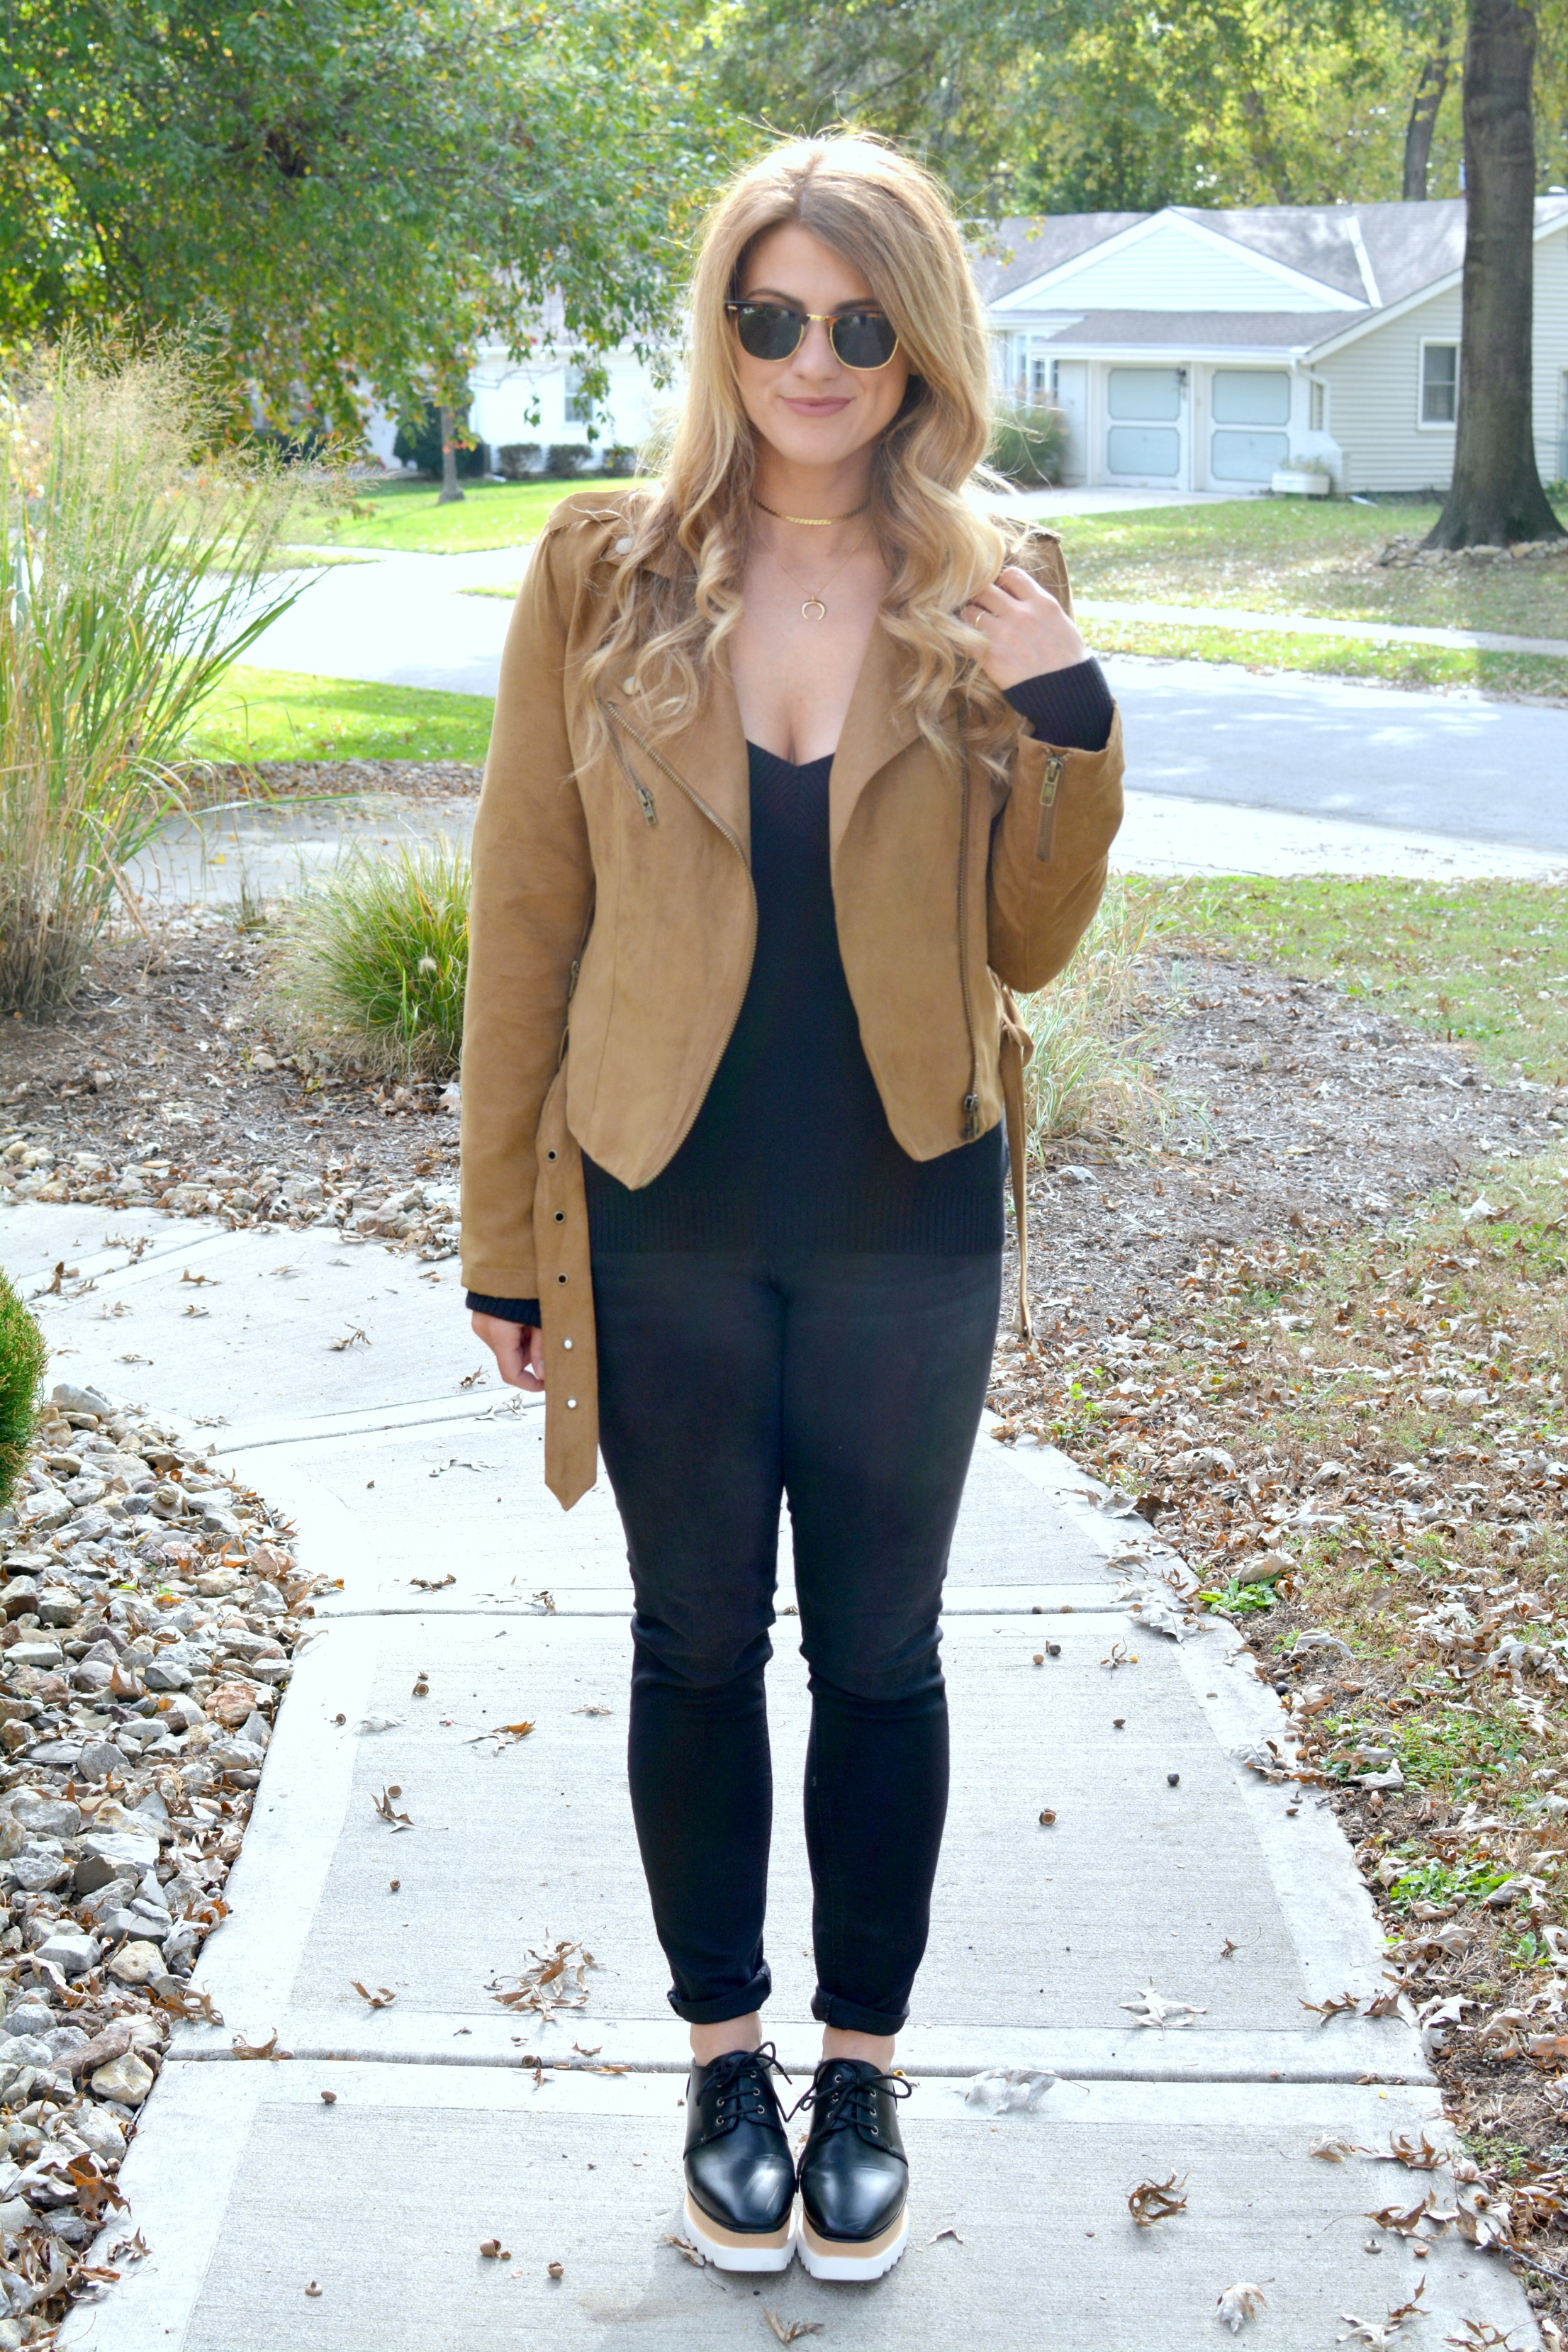 Ashley from LSR in a tan suede jacket, black jeans, and flatforms